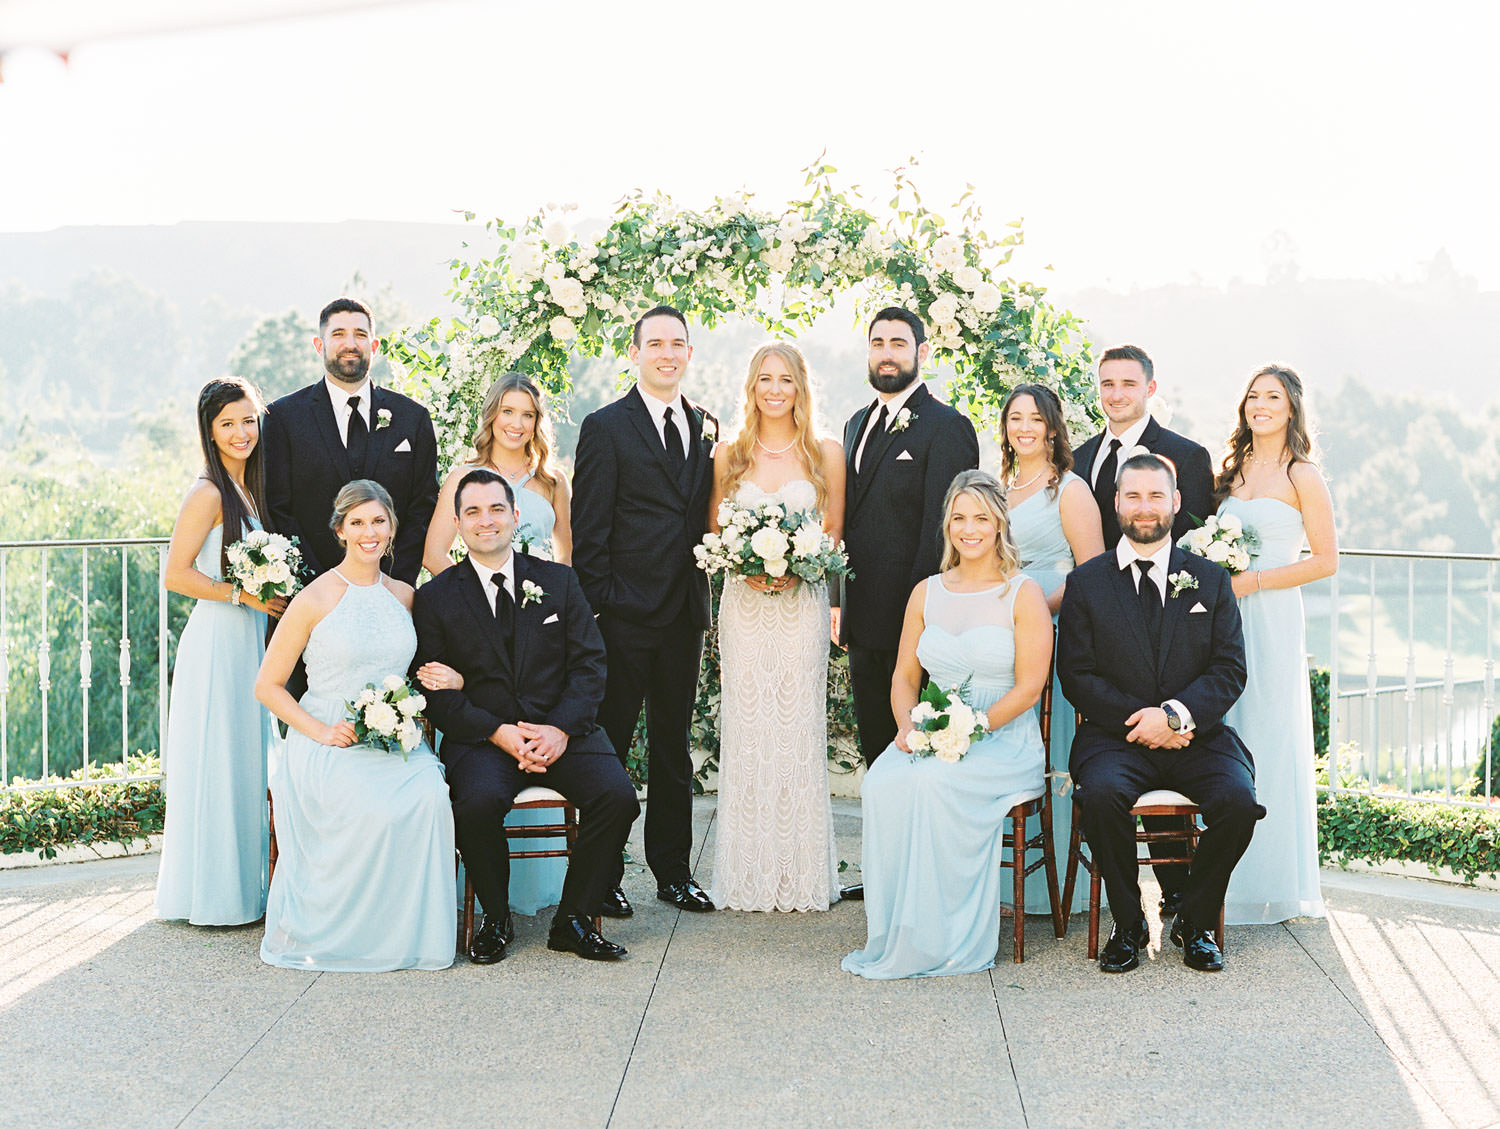 Film photo of bridal party in front of a semicircle arch covered in greenery and ivory flowers. Pale blue turquoise bridesmaids gowns and Galia Lahav bridal gown. Luxury wedding ceremony arch by Compass Floral, Del Mar Country Club Wedding by Cavin Elizabeth Photography